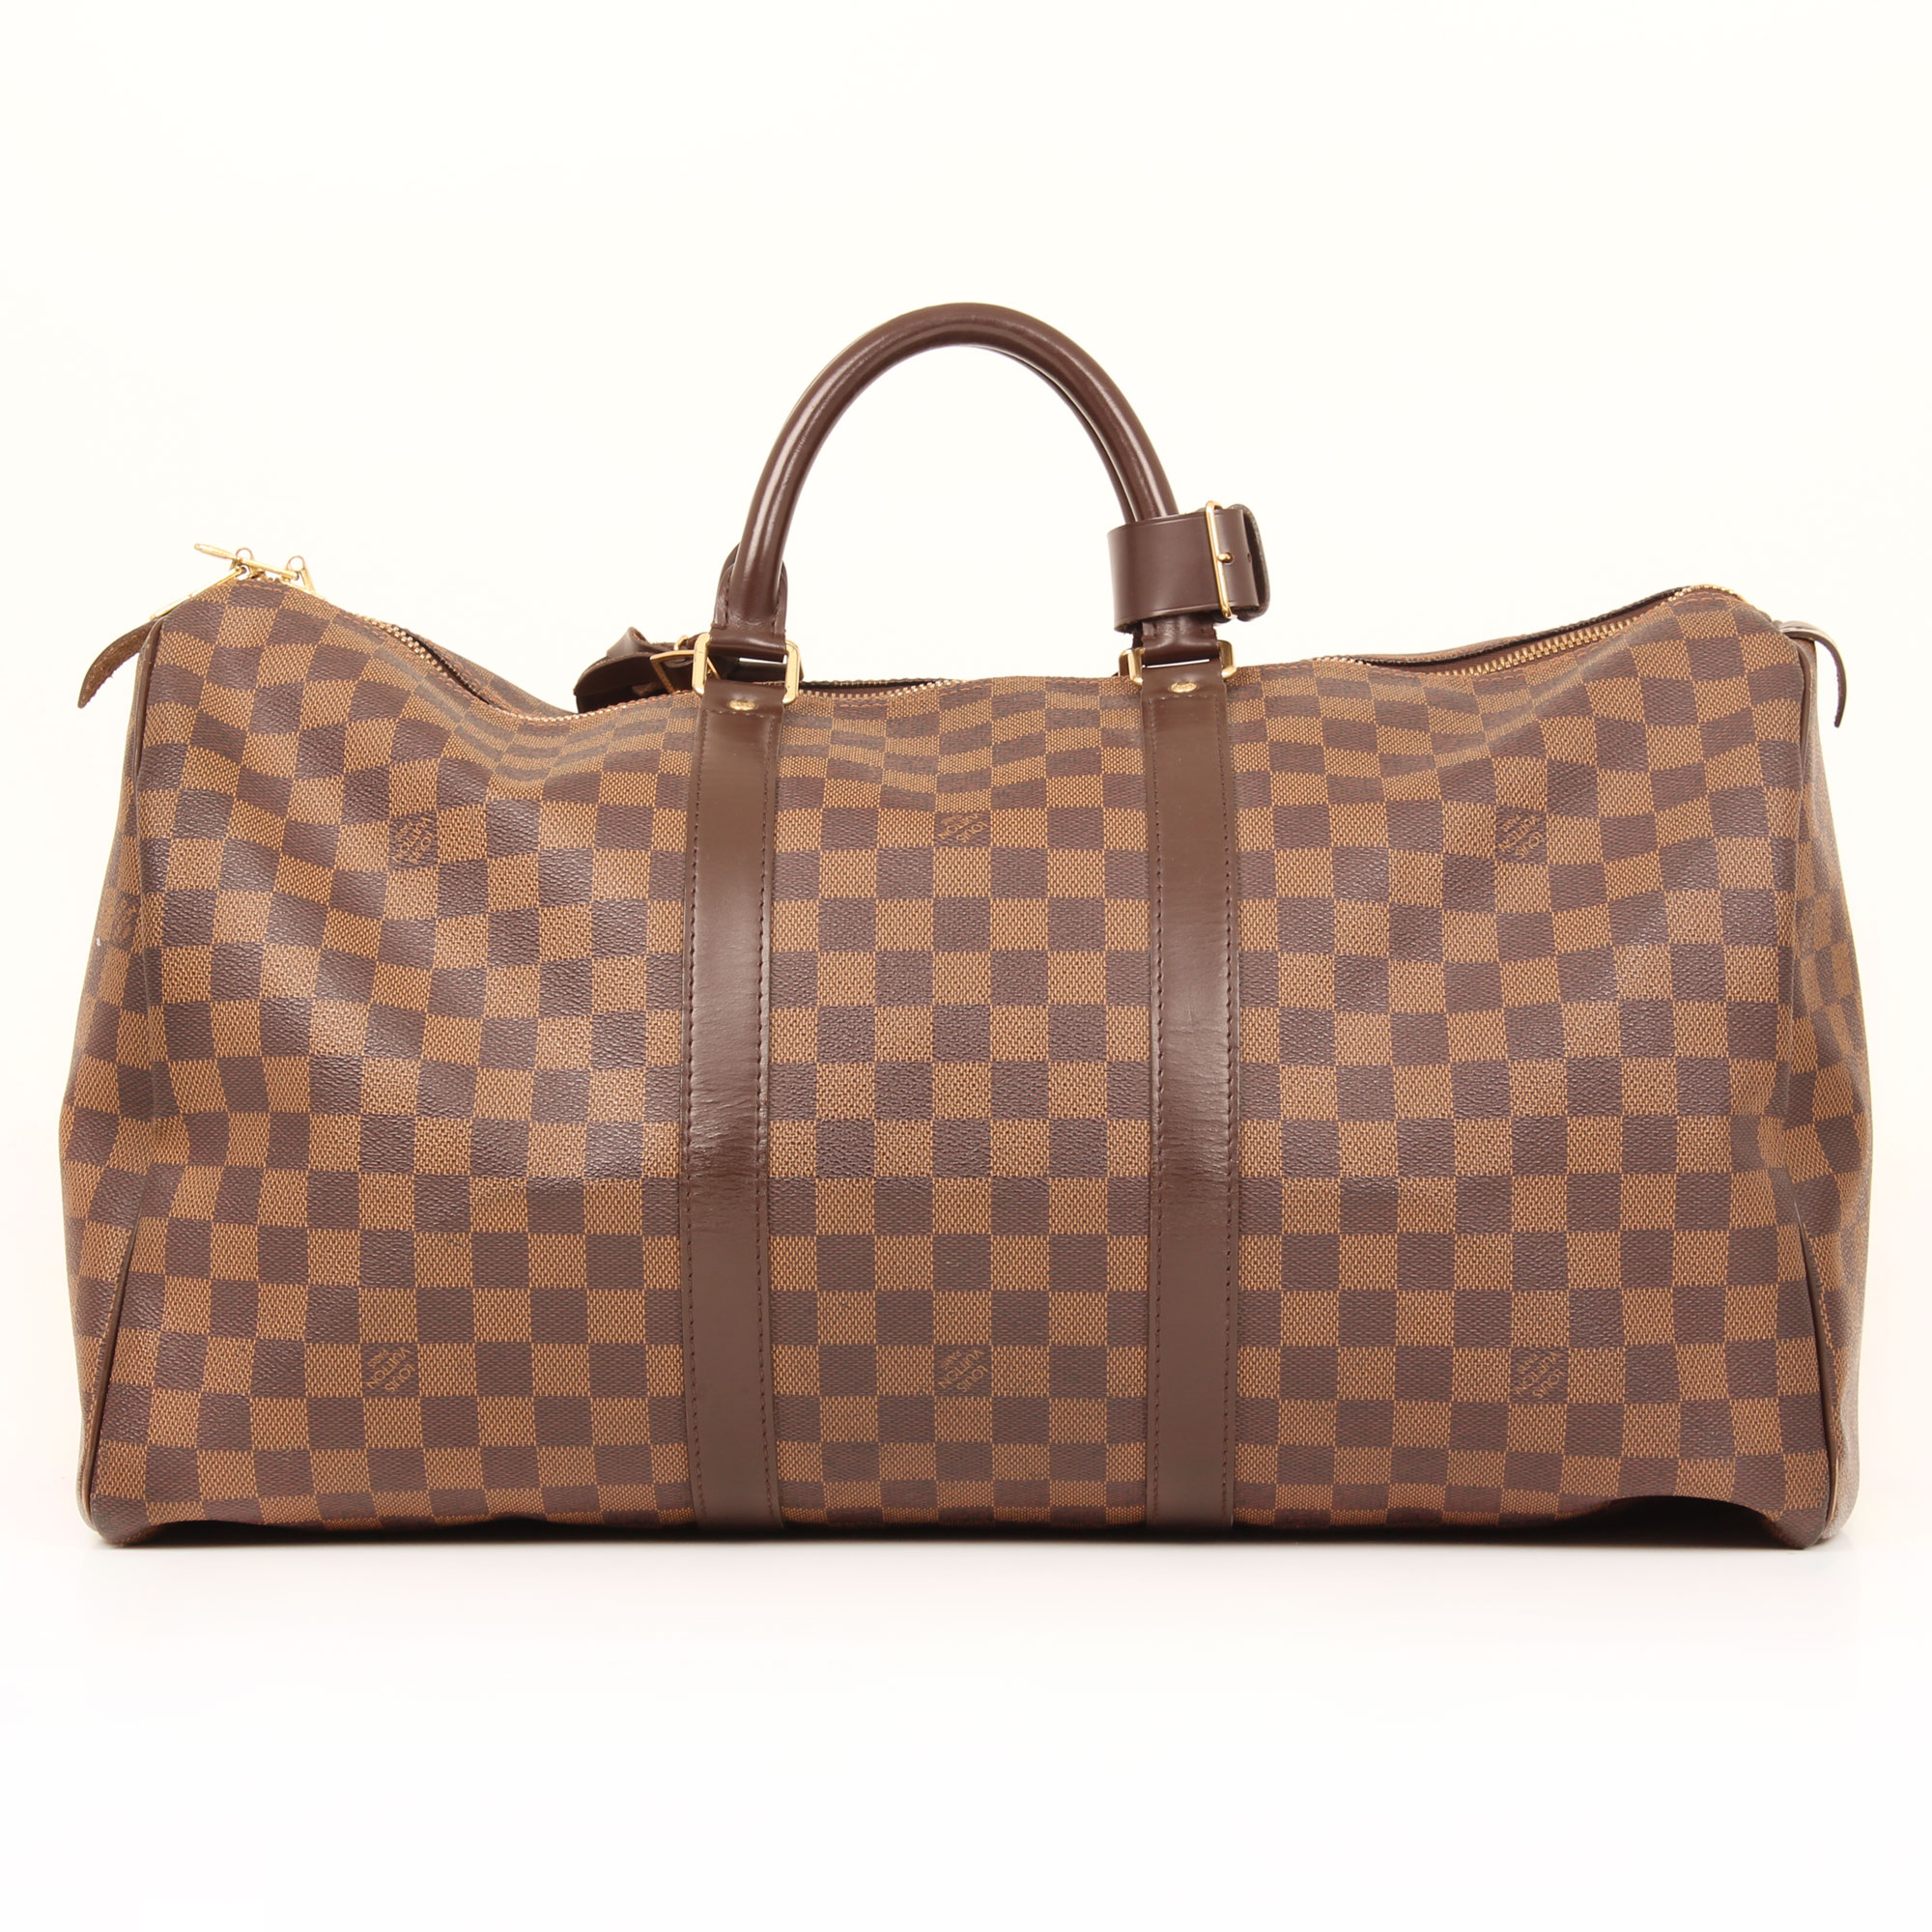 travel-bag-louis-vuitton-keepall-50-damier-ebene-back